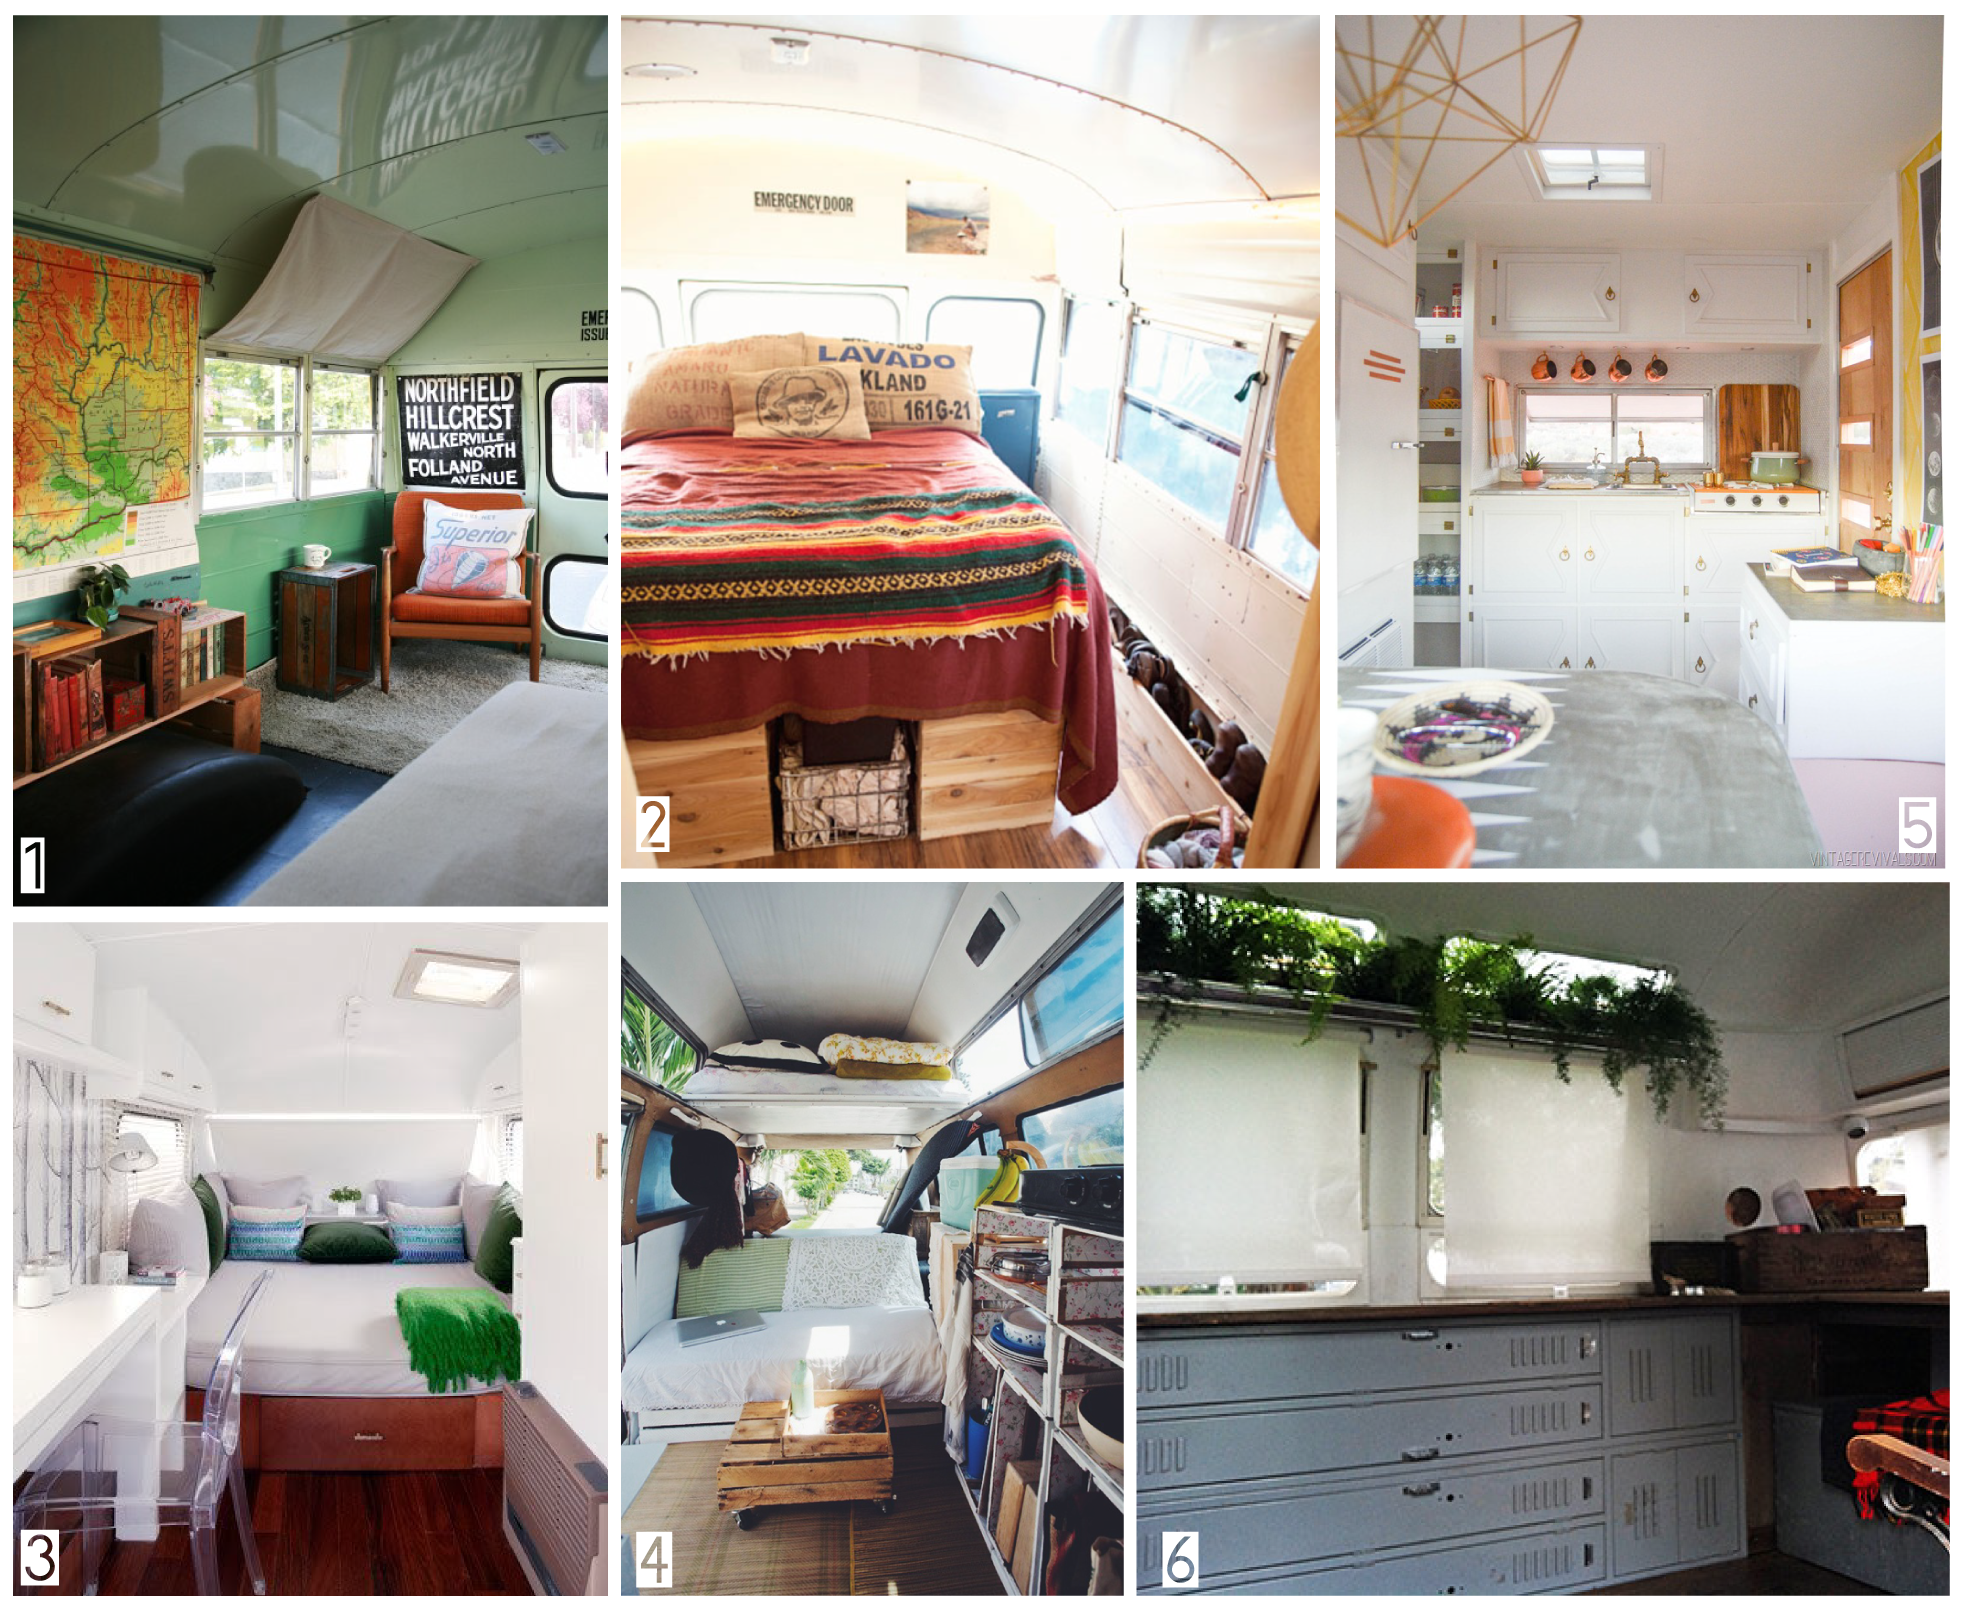 """1.  Marco Khalil and Caroline West's  School Bus   2. Hello Bluebird's  Bus Reno   3.  Beautiful, Minimalist Trailer , built by  Caravanolic and decorated by  Vice versa   4.   Navigation Trust's 1971 Kombi  5. The super adorable  """"Nugget"""" by  Vintage Revivals   6. A very French, Rustic  Camper Makeover (I wish I could read it!)"""